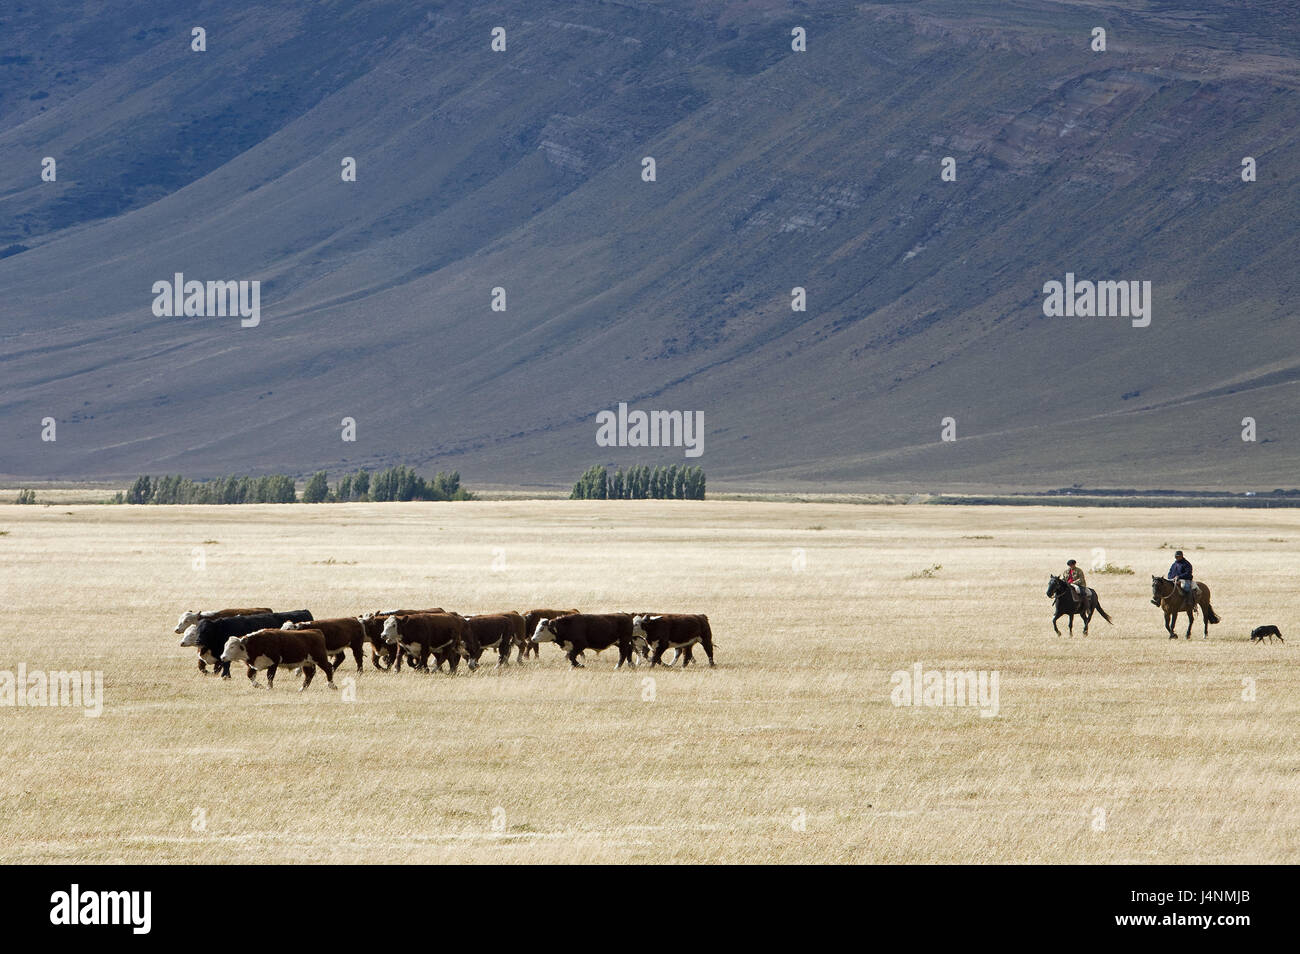 Chile, Patagonia, scenery, cow's focuses, Gauchos, - Stock Image